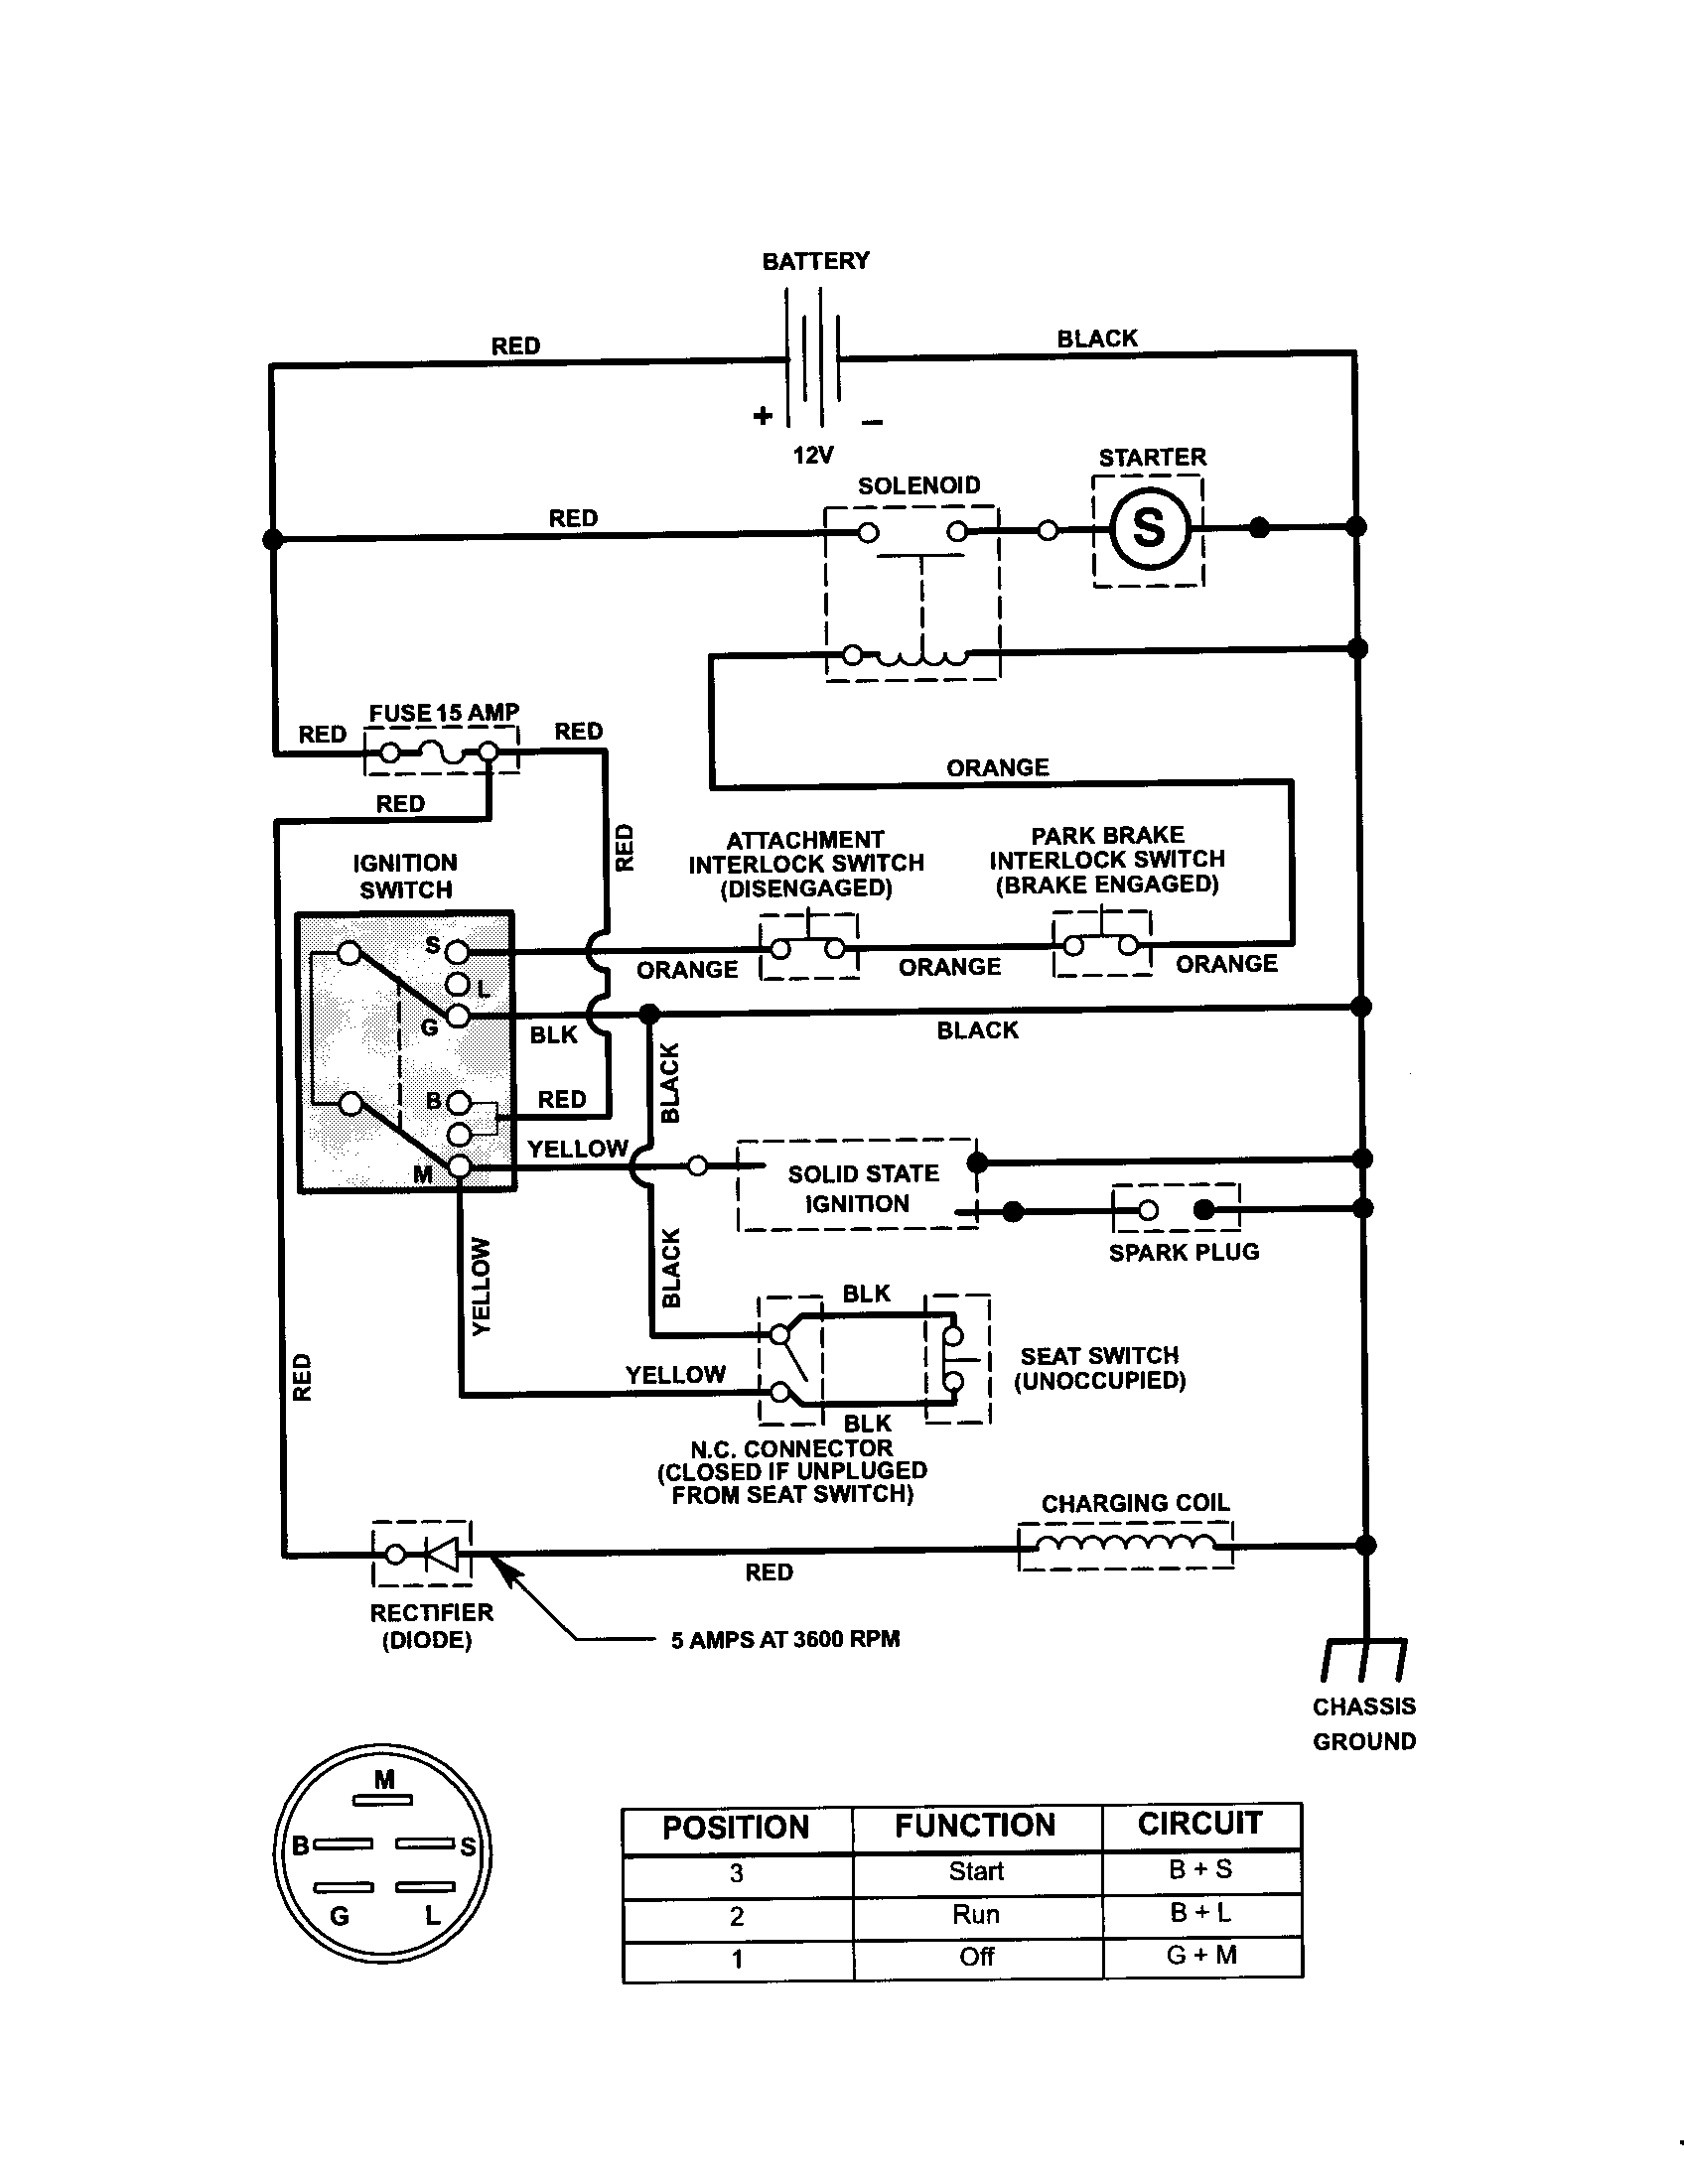 1b4fc64e2bcb7b381848942ff5c84dce craftsman riding mower electrical diagram pictures of craftsman Basic Lawn Tractor Wiring Diagram at fashall.co